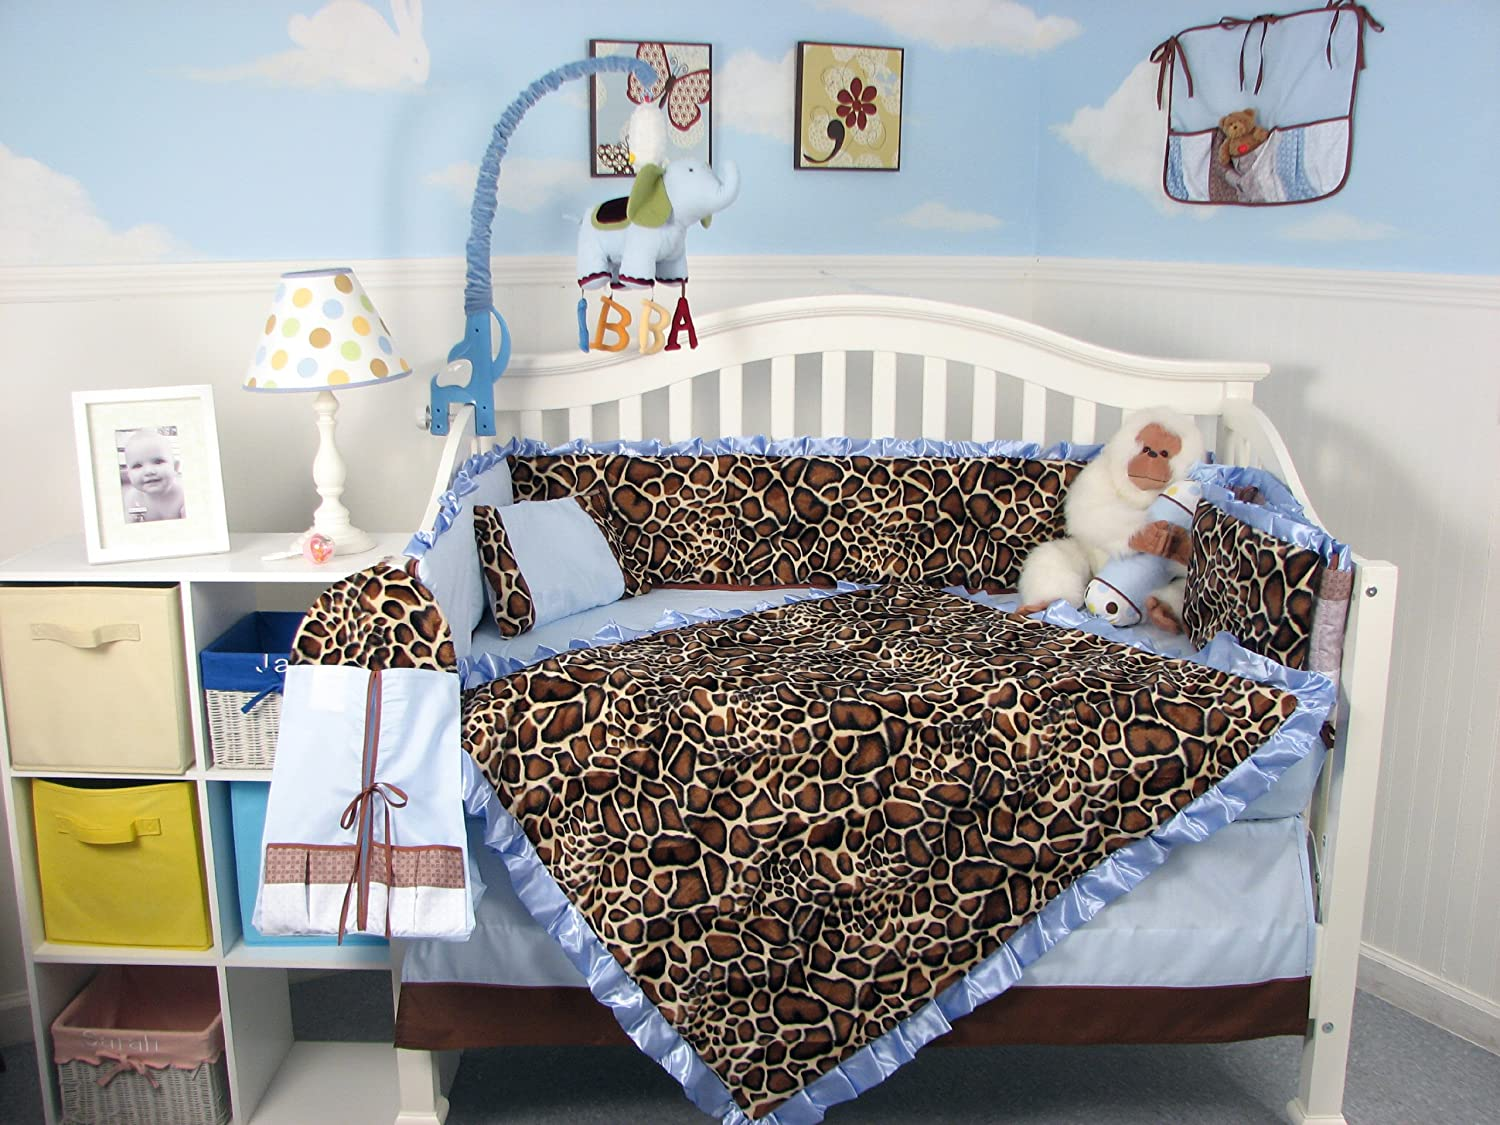 twin bedding ikea boy beautiful for woodland toddler set bedroom uk crib under baby design also home furniture cheap with kids plastic plans girls bright colors boys elegant kritter awesome machinery designer modern unique storage bed ideas cradle of gallery sets